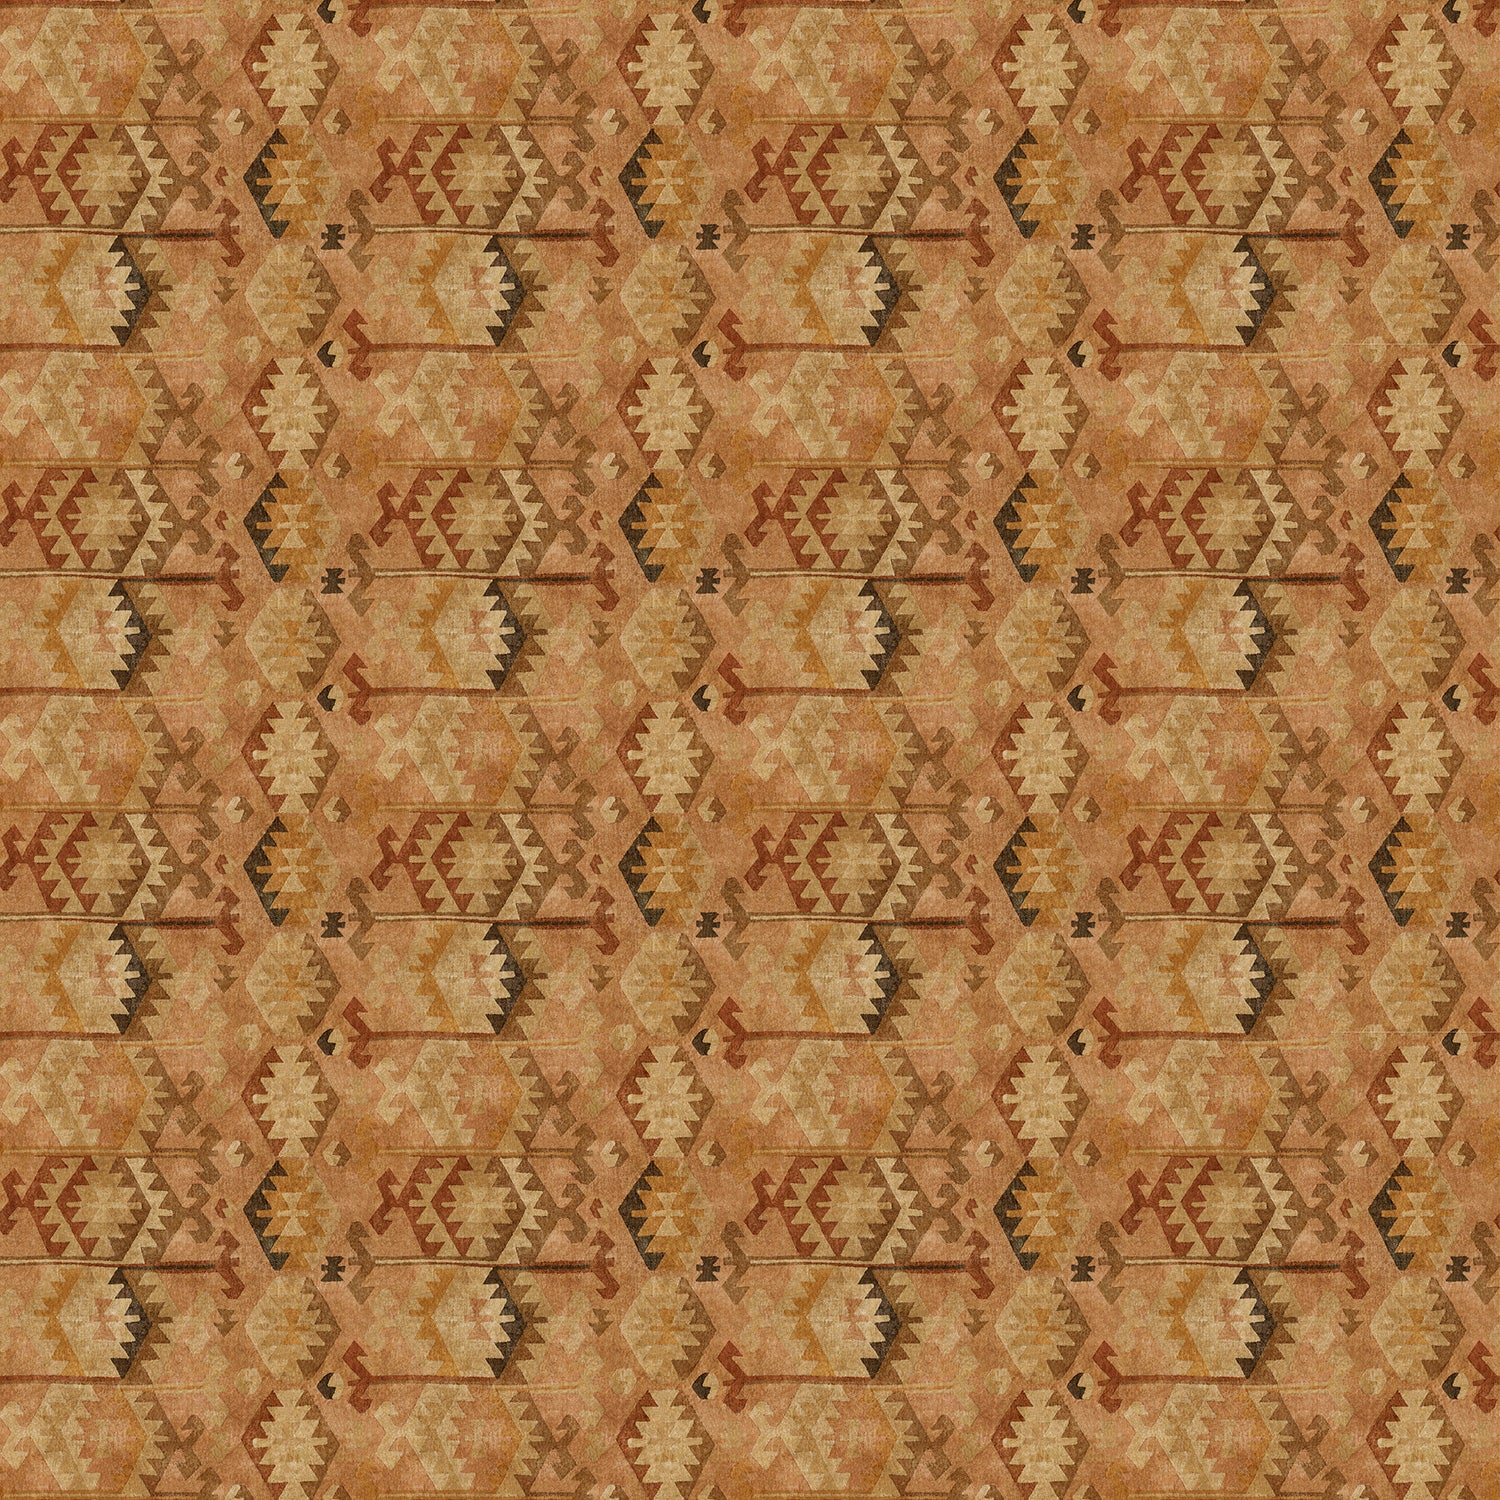 Brown velvet fabric with a vintage kilim inspired design and stain resistant finish